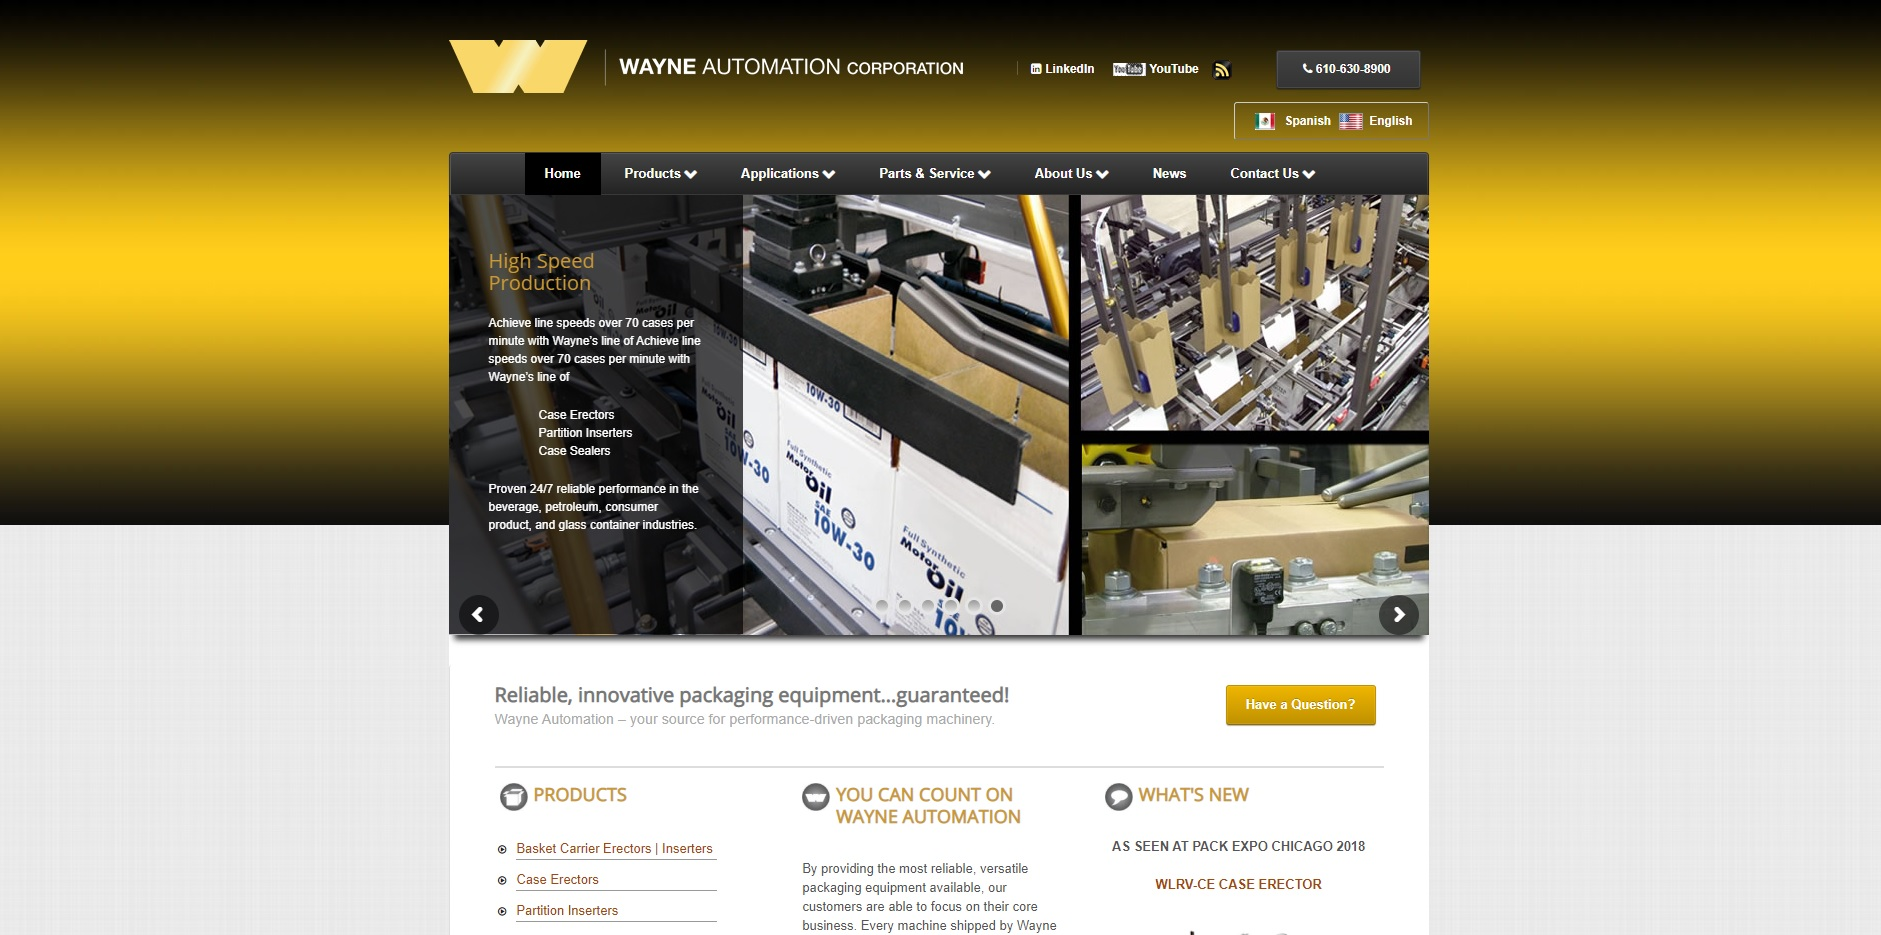 Wayne Automation Corporation